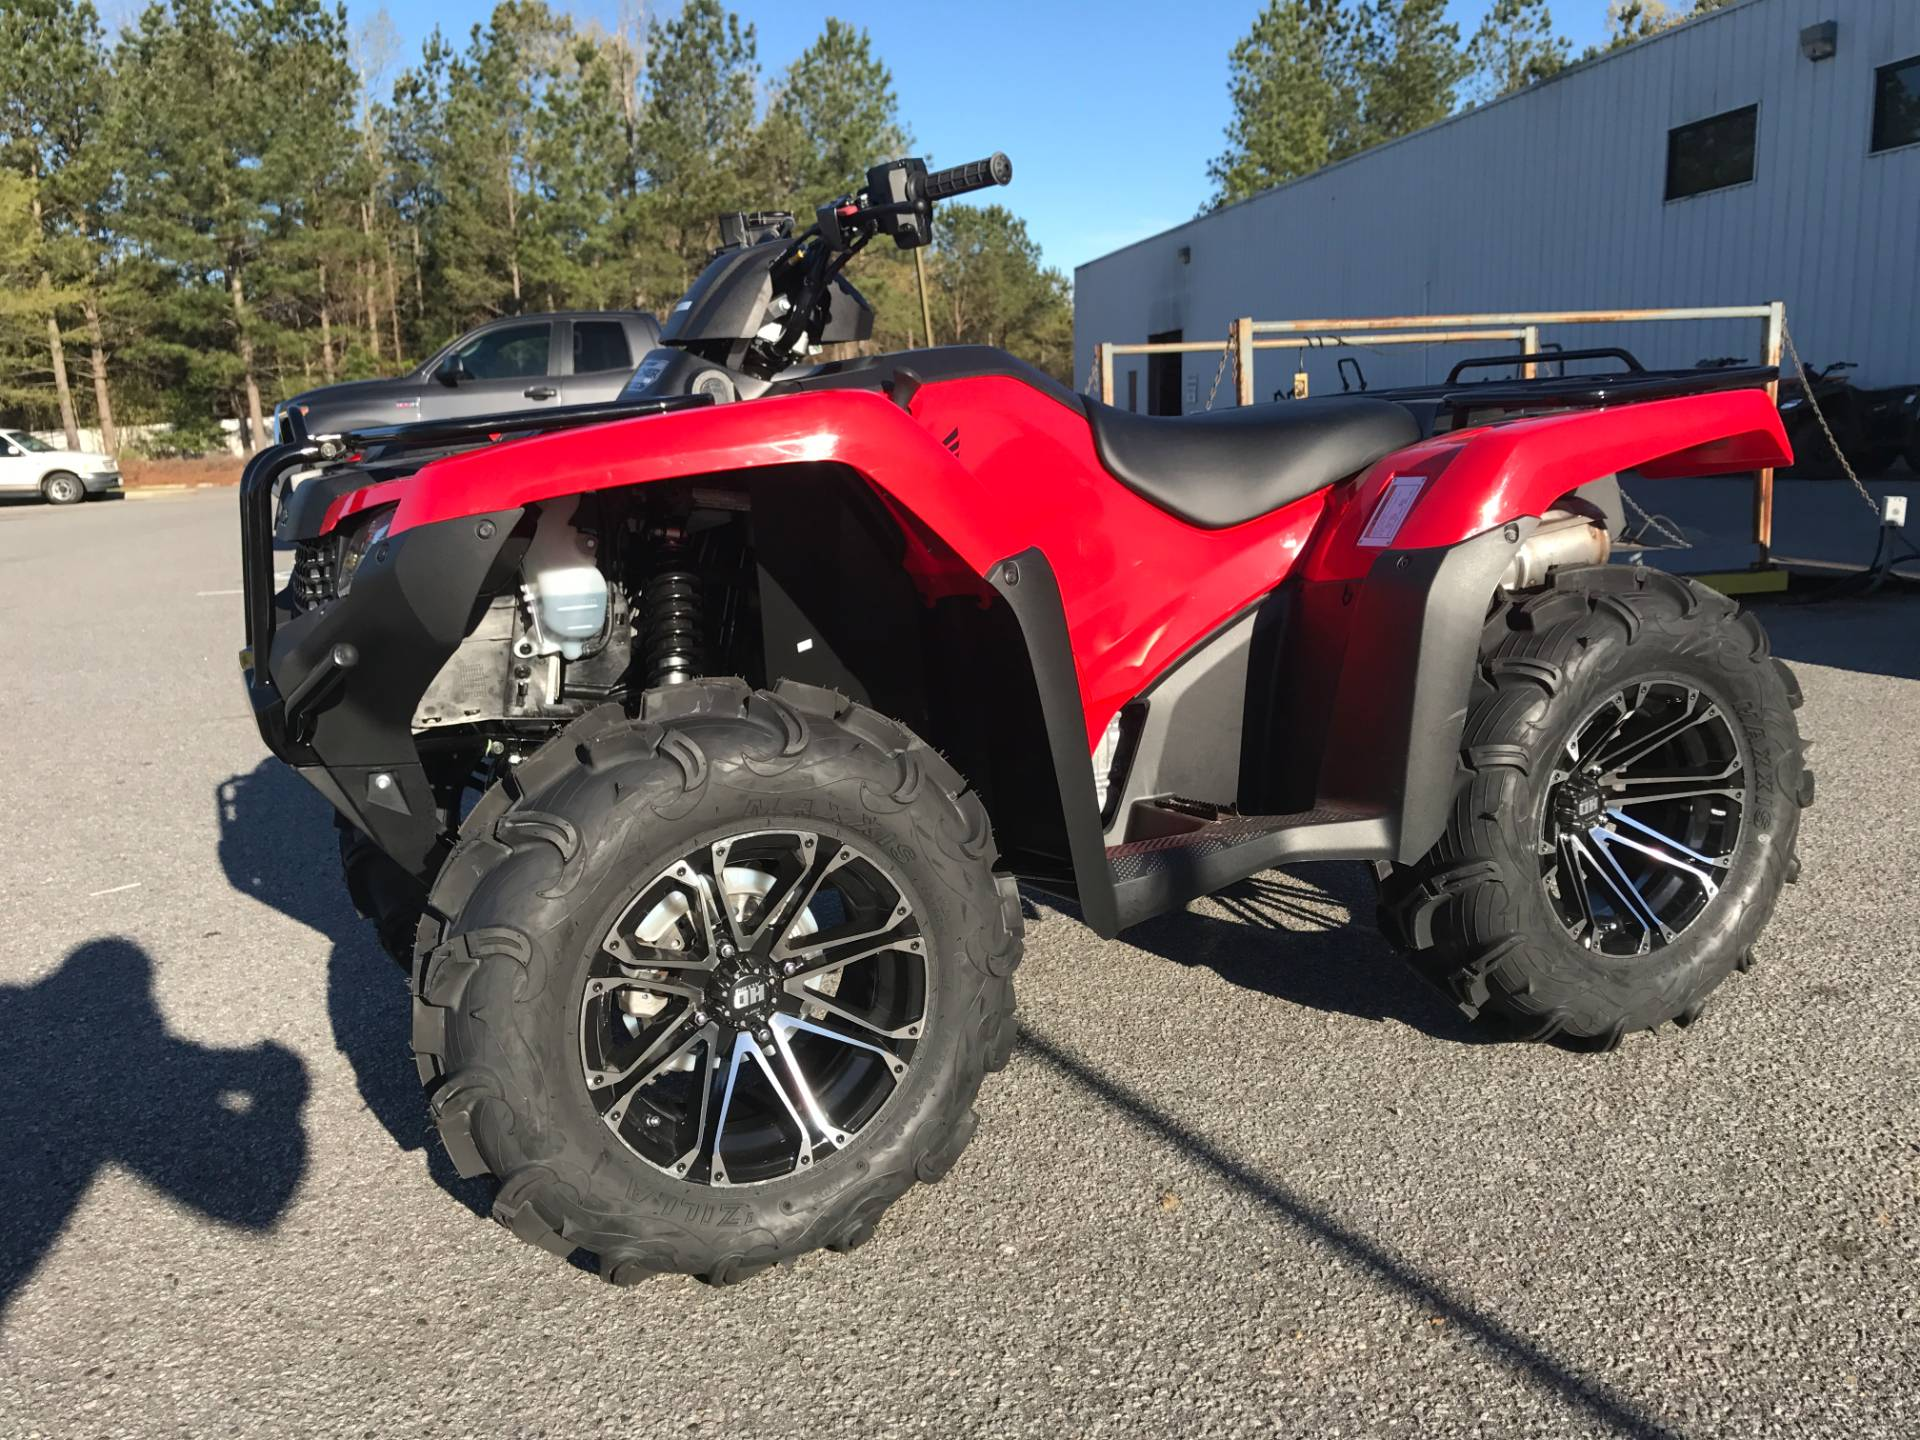 Scooters For Sale Greenville Nc >> 2017 Honda FourTrax Rancher 4x4 ES For Sale Greenville, NC : 11127